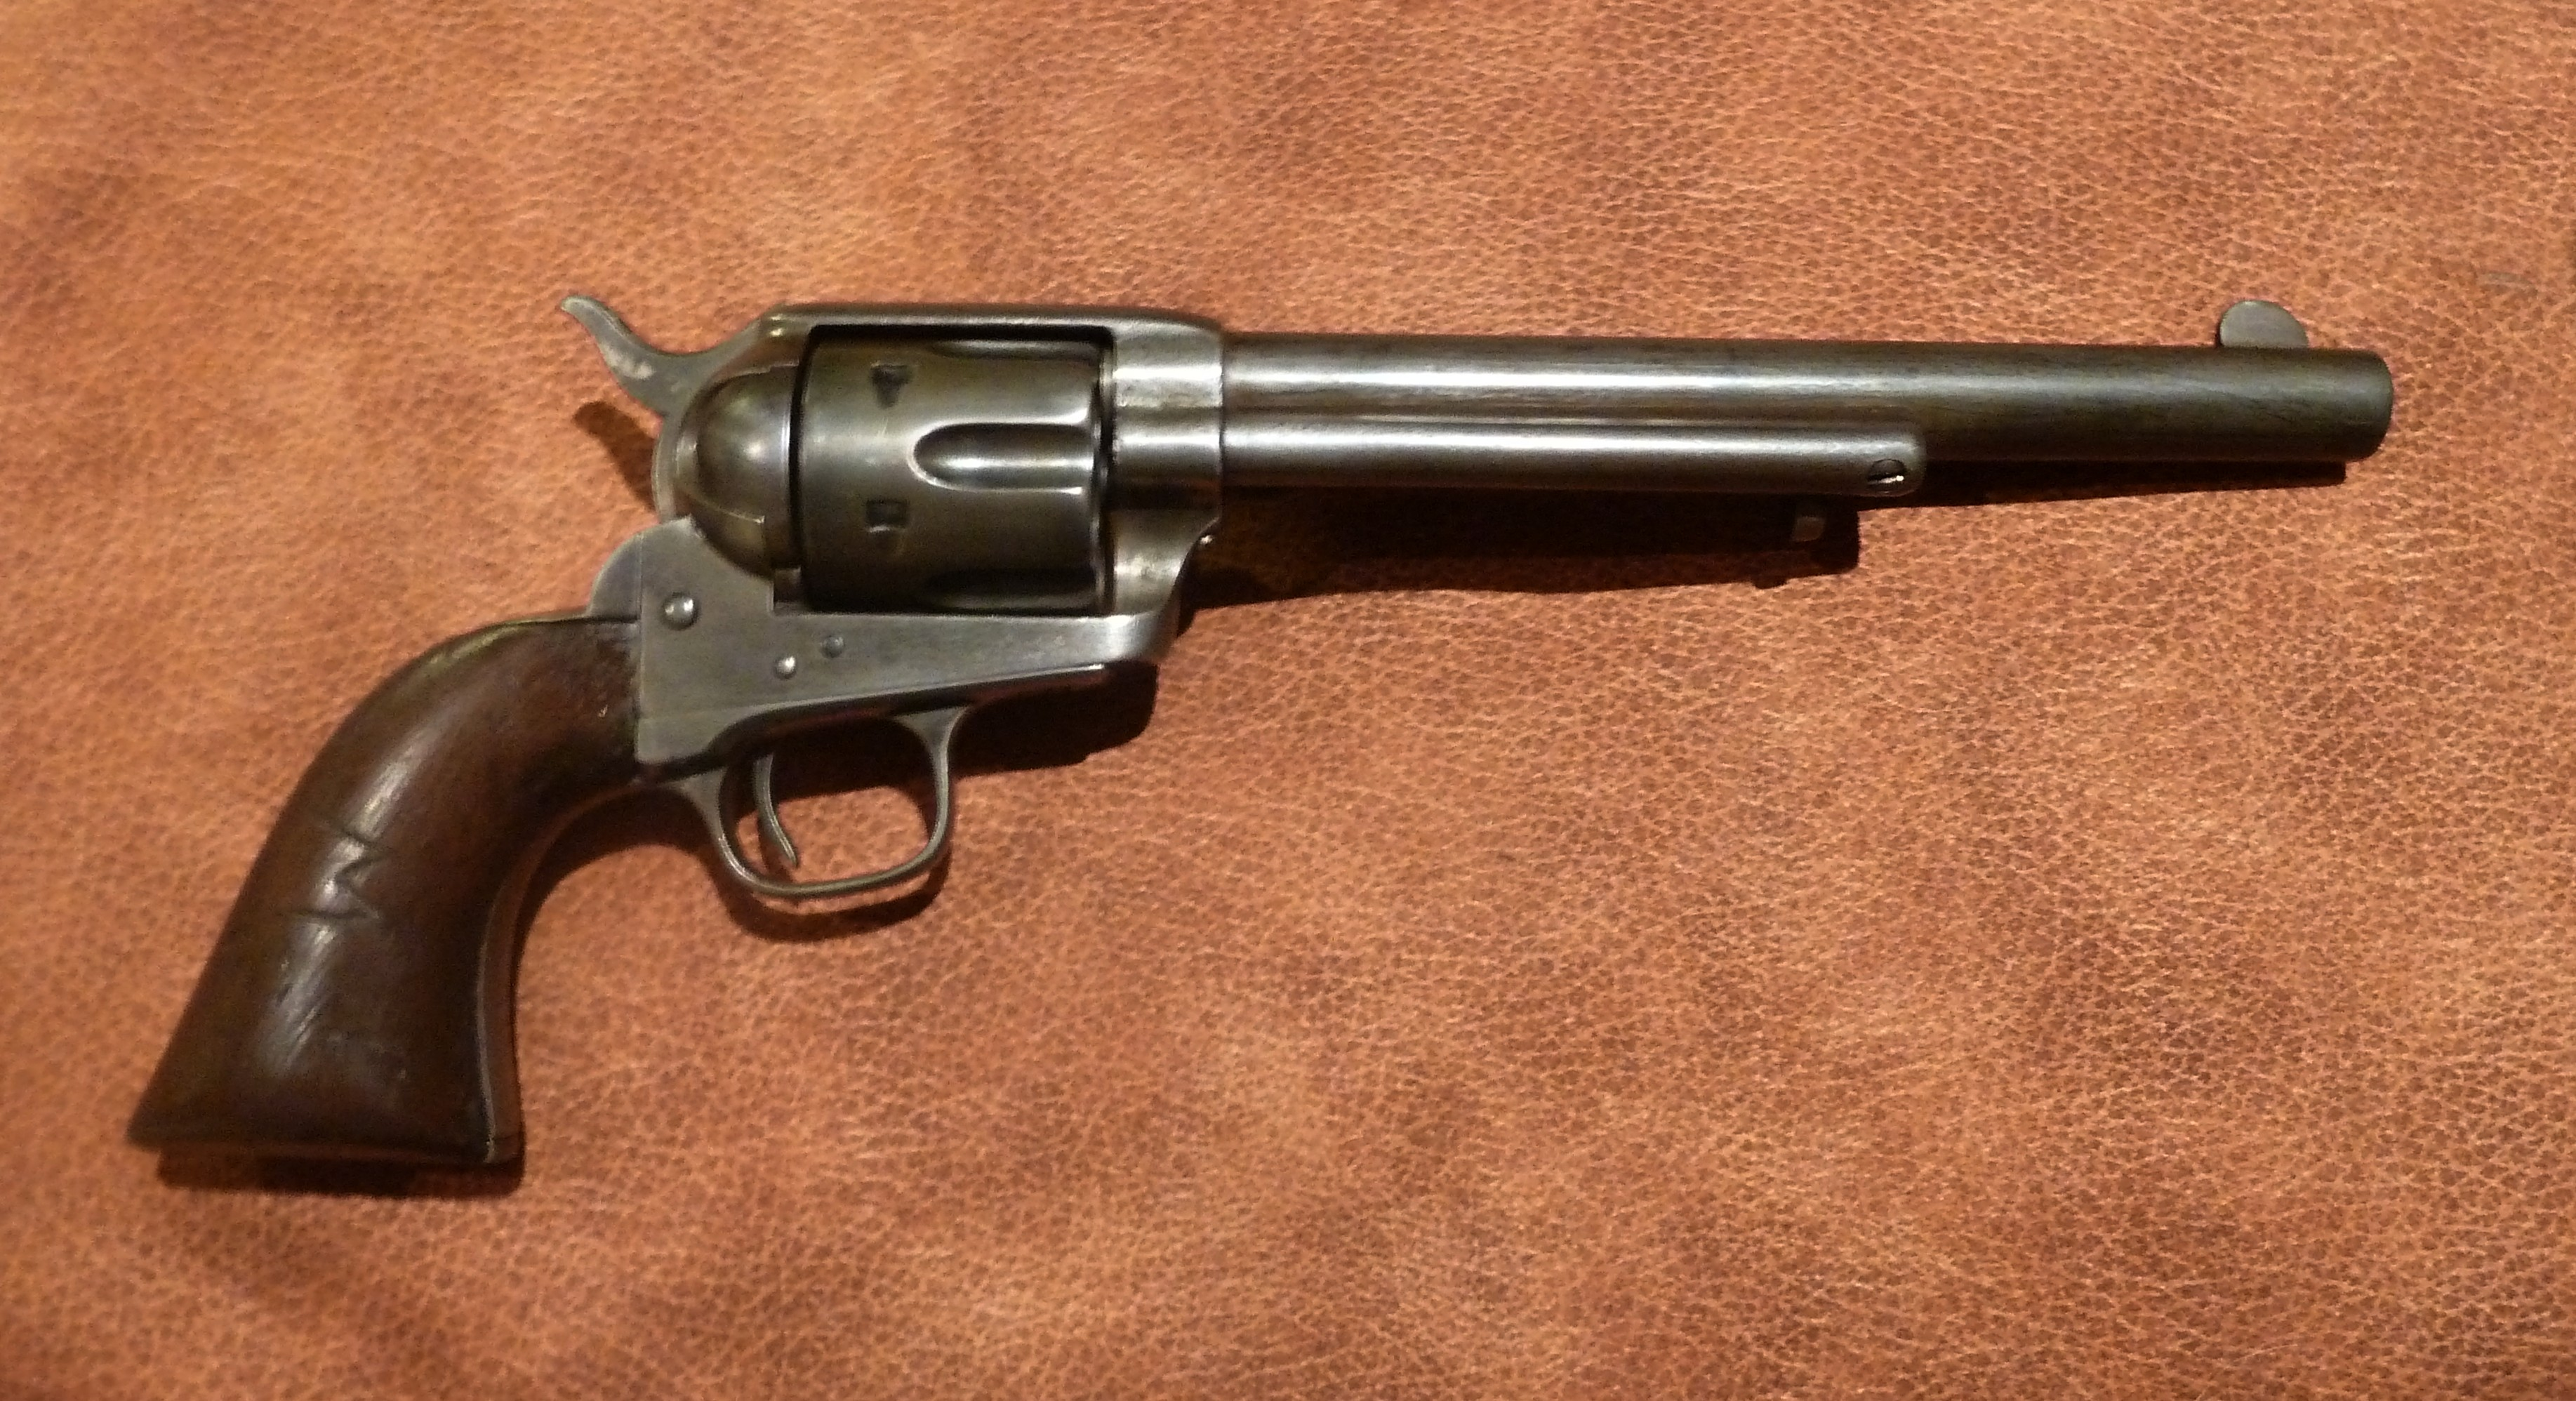 """singles in colt Single action army was what the military used when the guns were issued to the cavalry the factory even today uses model designations of the alphabet & this model was the """"p"""" calibers & configurations: the 45 colt chambering was by far the most popular, accounting for nearly half of the pre-wwii saa's."""